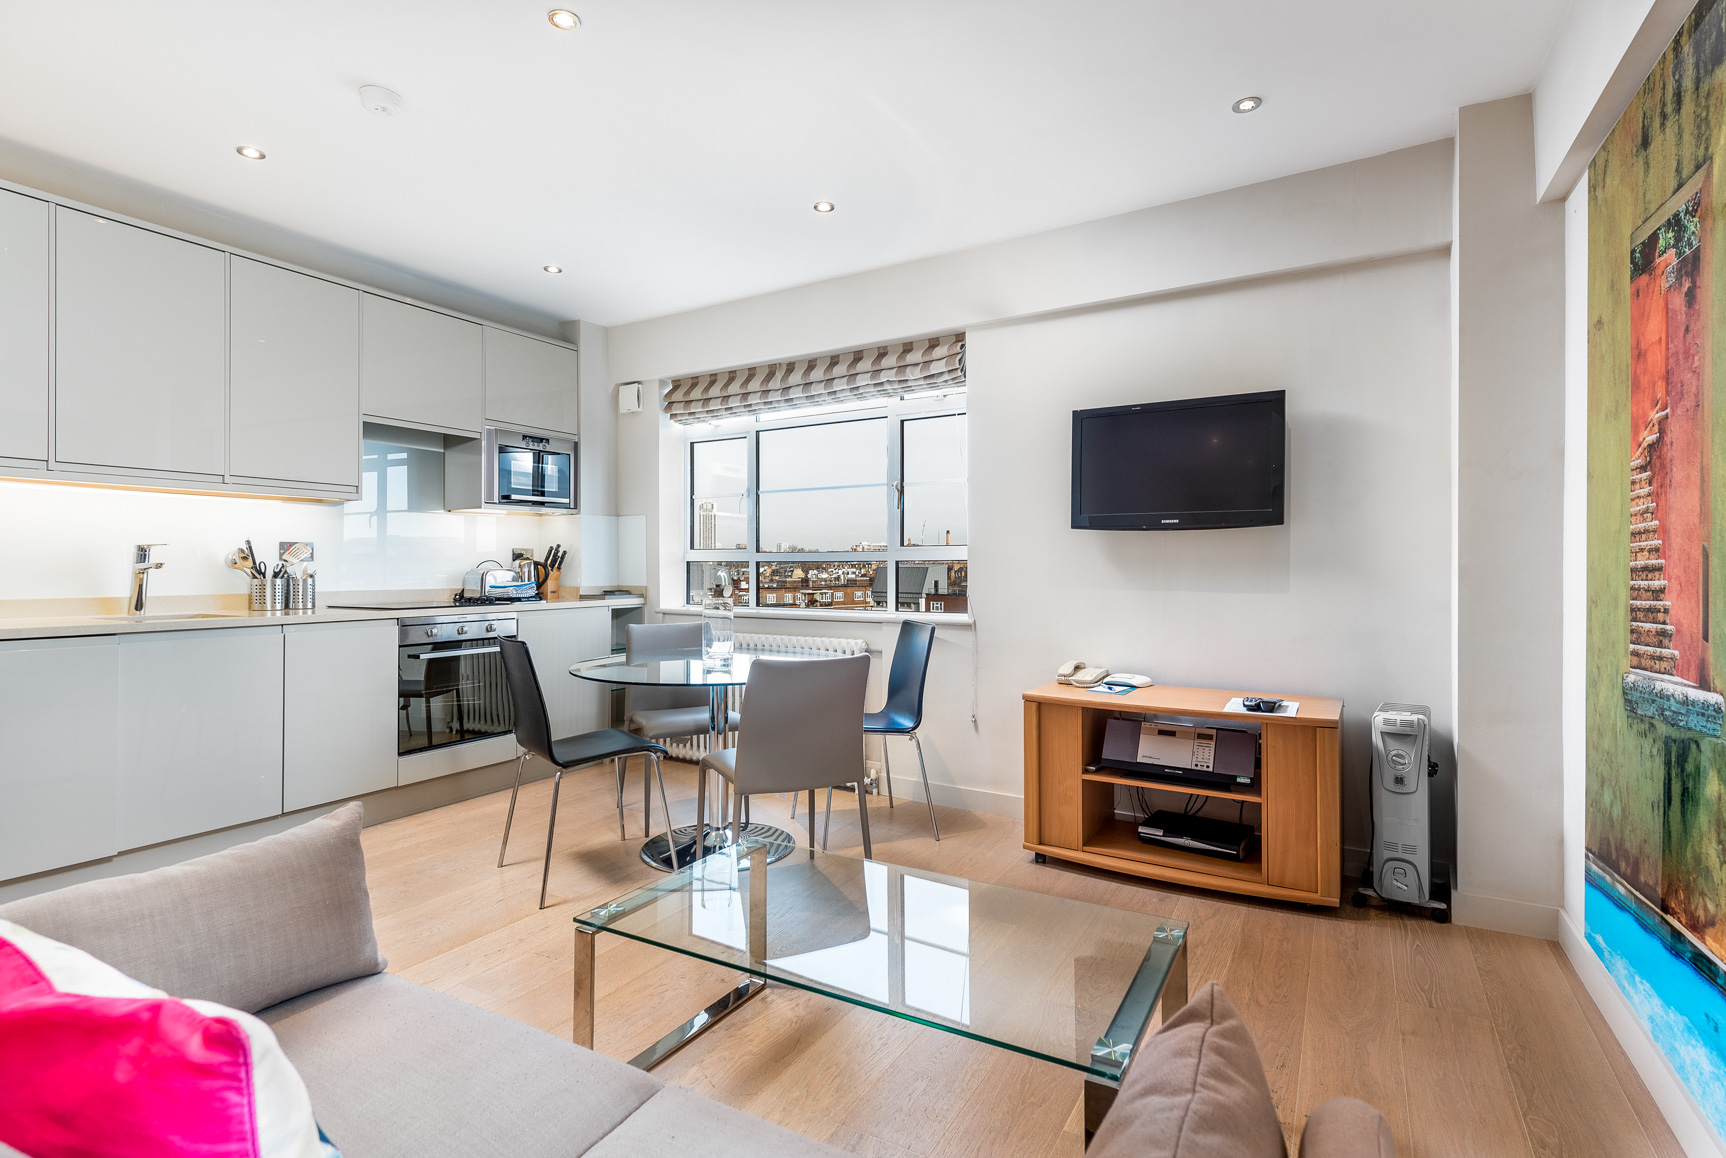 Open plan space at Nell Gwynn House Accommodation, Chelsea, London